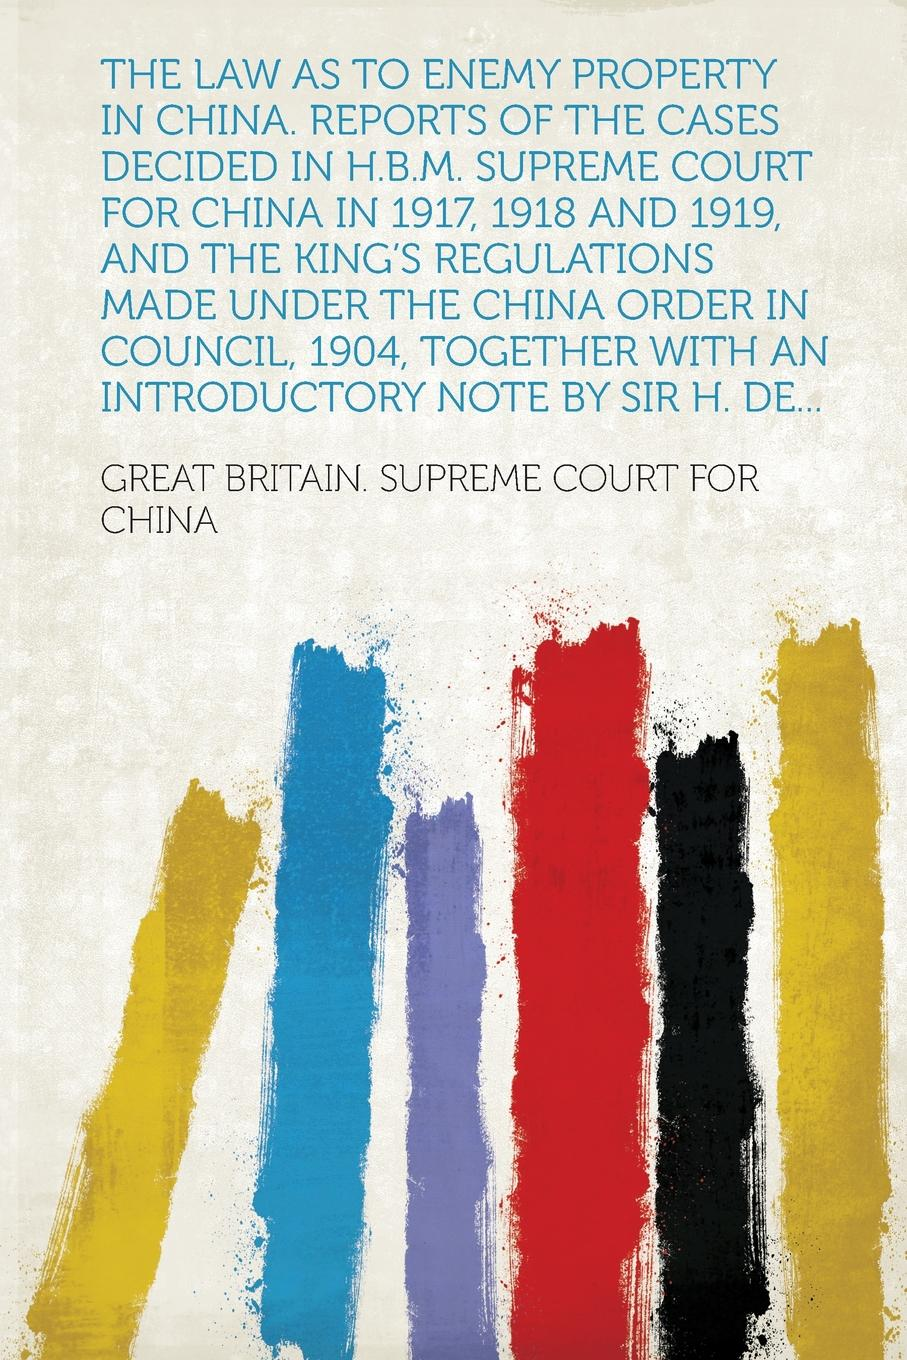 Great Britain. Supreme Court for China The Law as to Enemy Property in China. Reports of the Cases Decided in H.B.M. Supreme Court for China in 1917, 1918 and 1919, and the King.s Regulations Made Under the China Order in Council, 1904, Together With an Introductory Note by Sir H. De... тахометр электронный made in china dt316nli wxb 003li ion